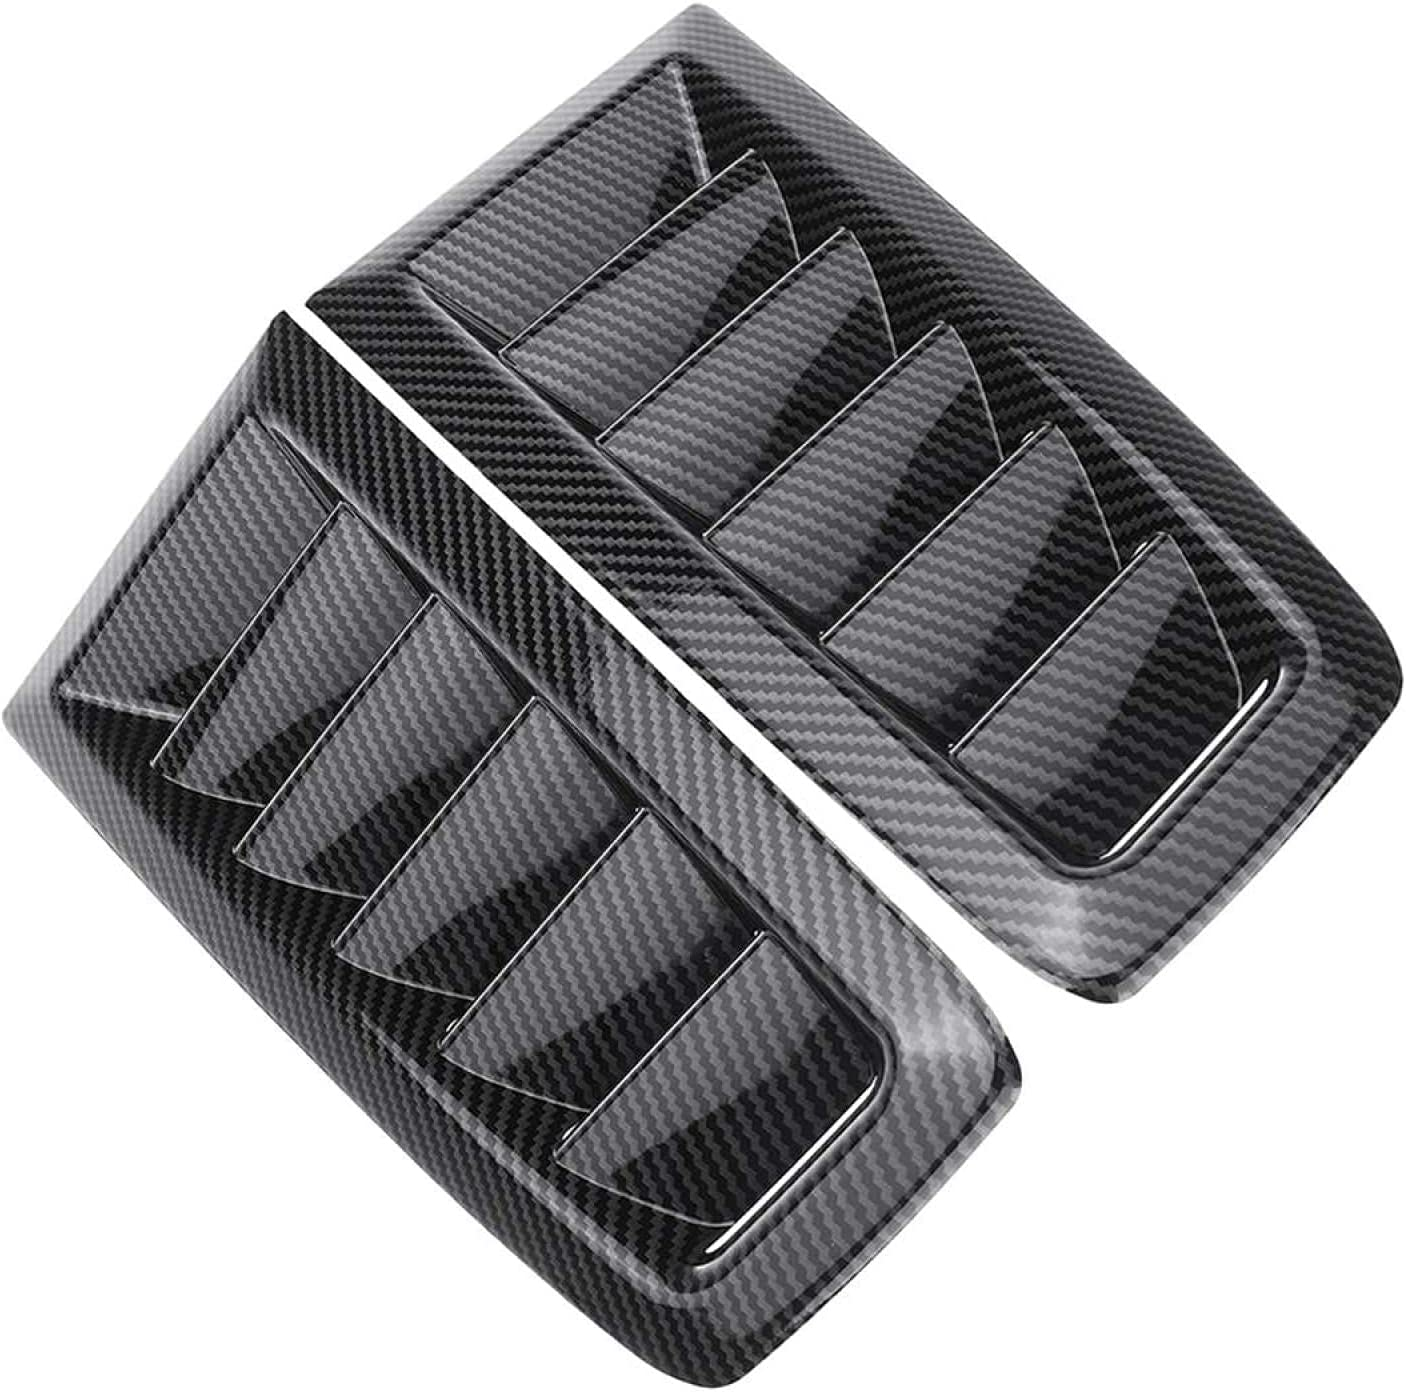 2X ABS Universal Car Front Bonnet Max 42% OFF low-pricing Focus Hood for Vents Ford